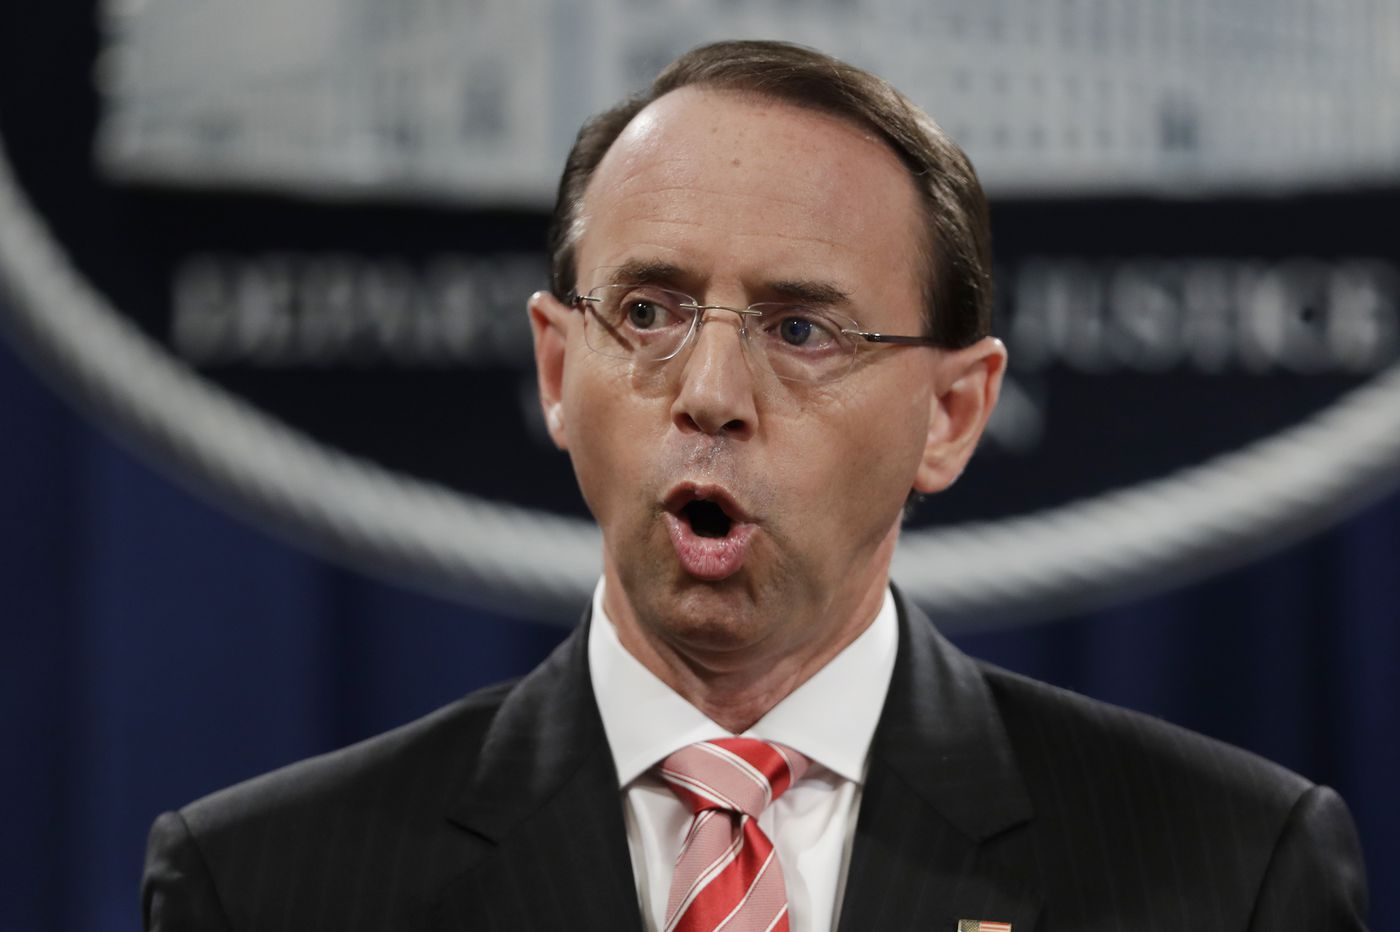 Deputy AG Rod Rosenstein to resign soon